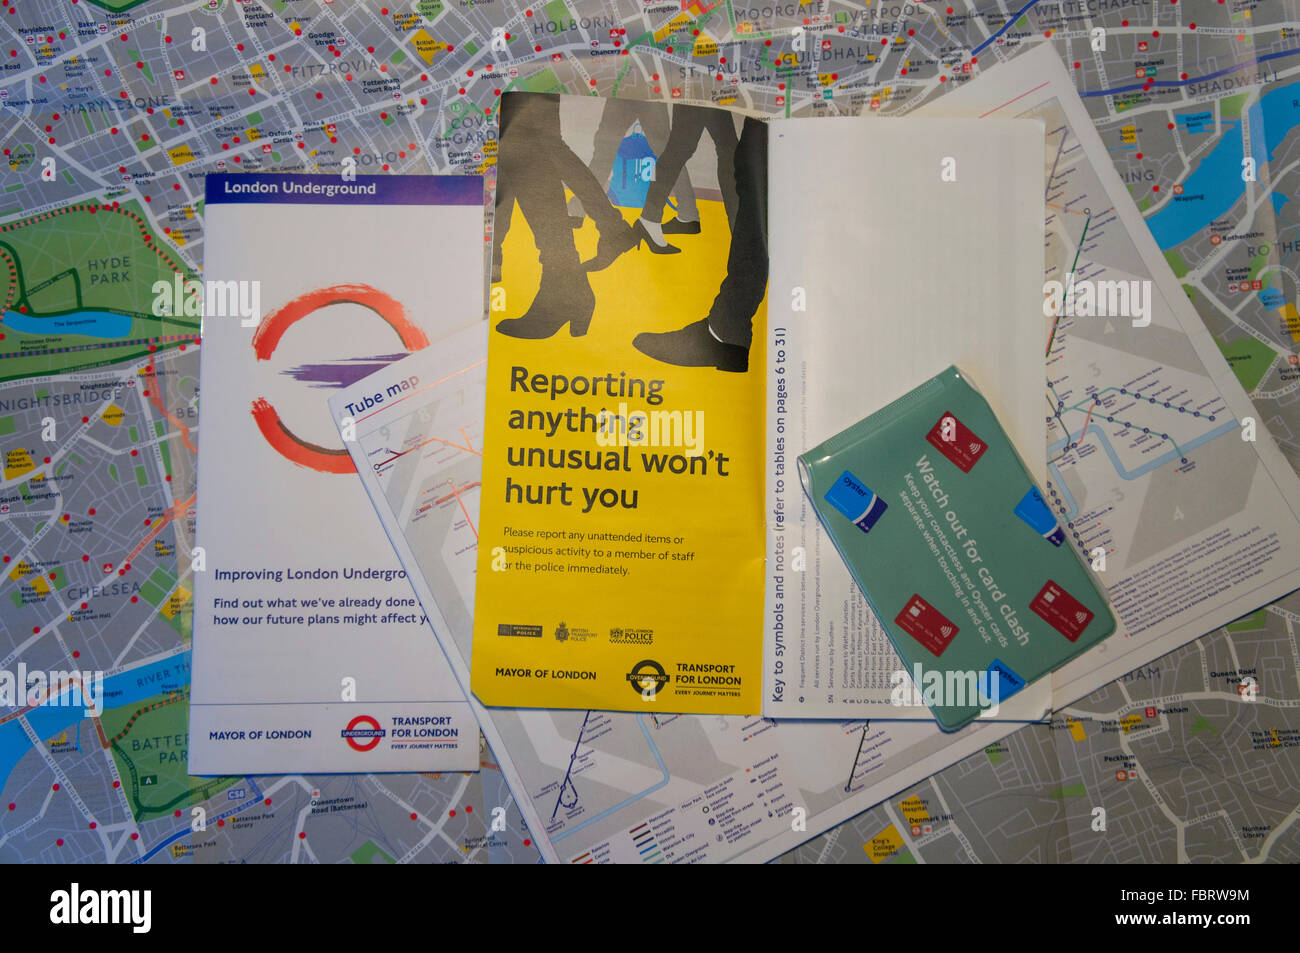 London Tube map Jul by airbus